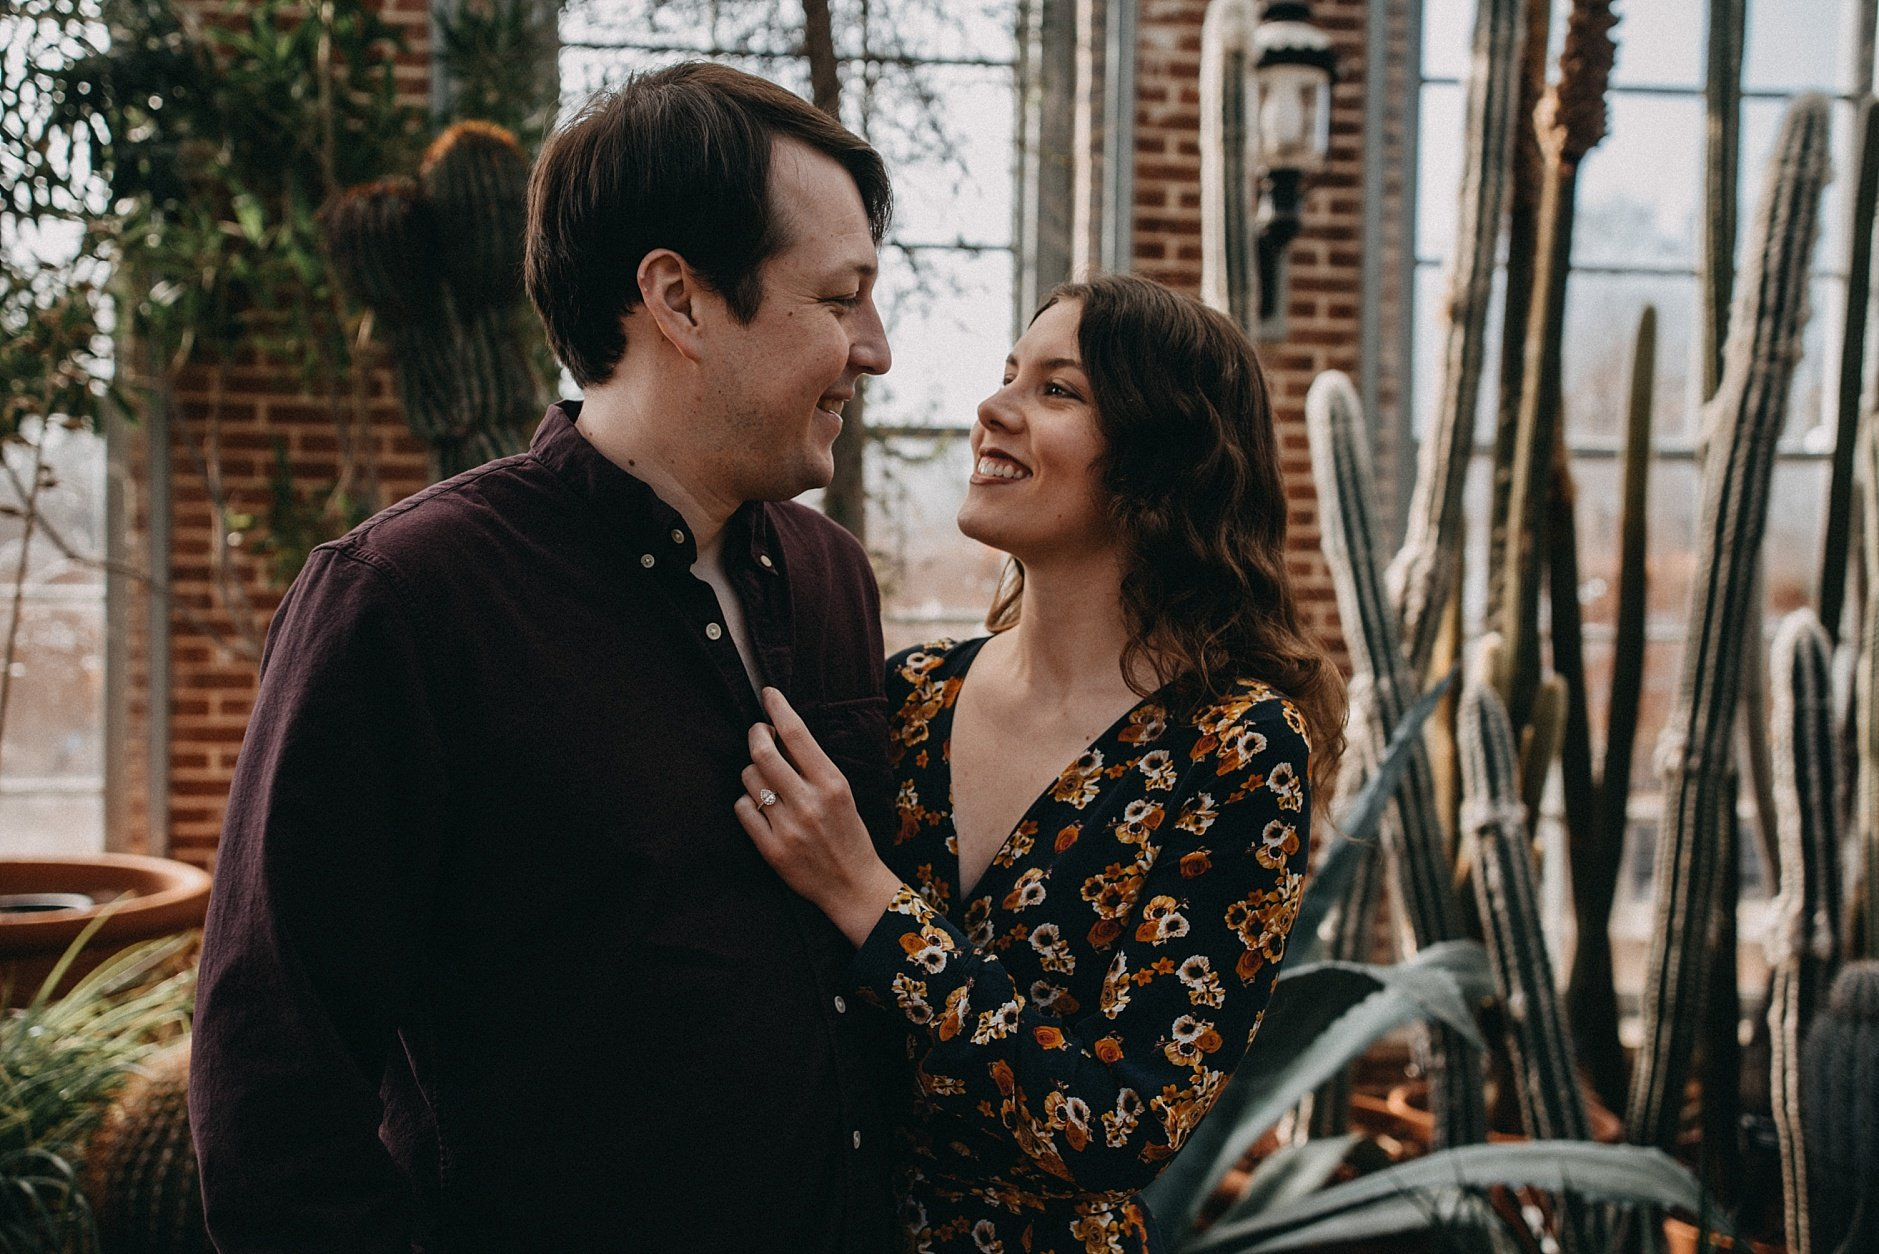 Engagment Session in St. Louis